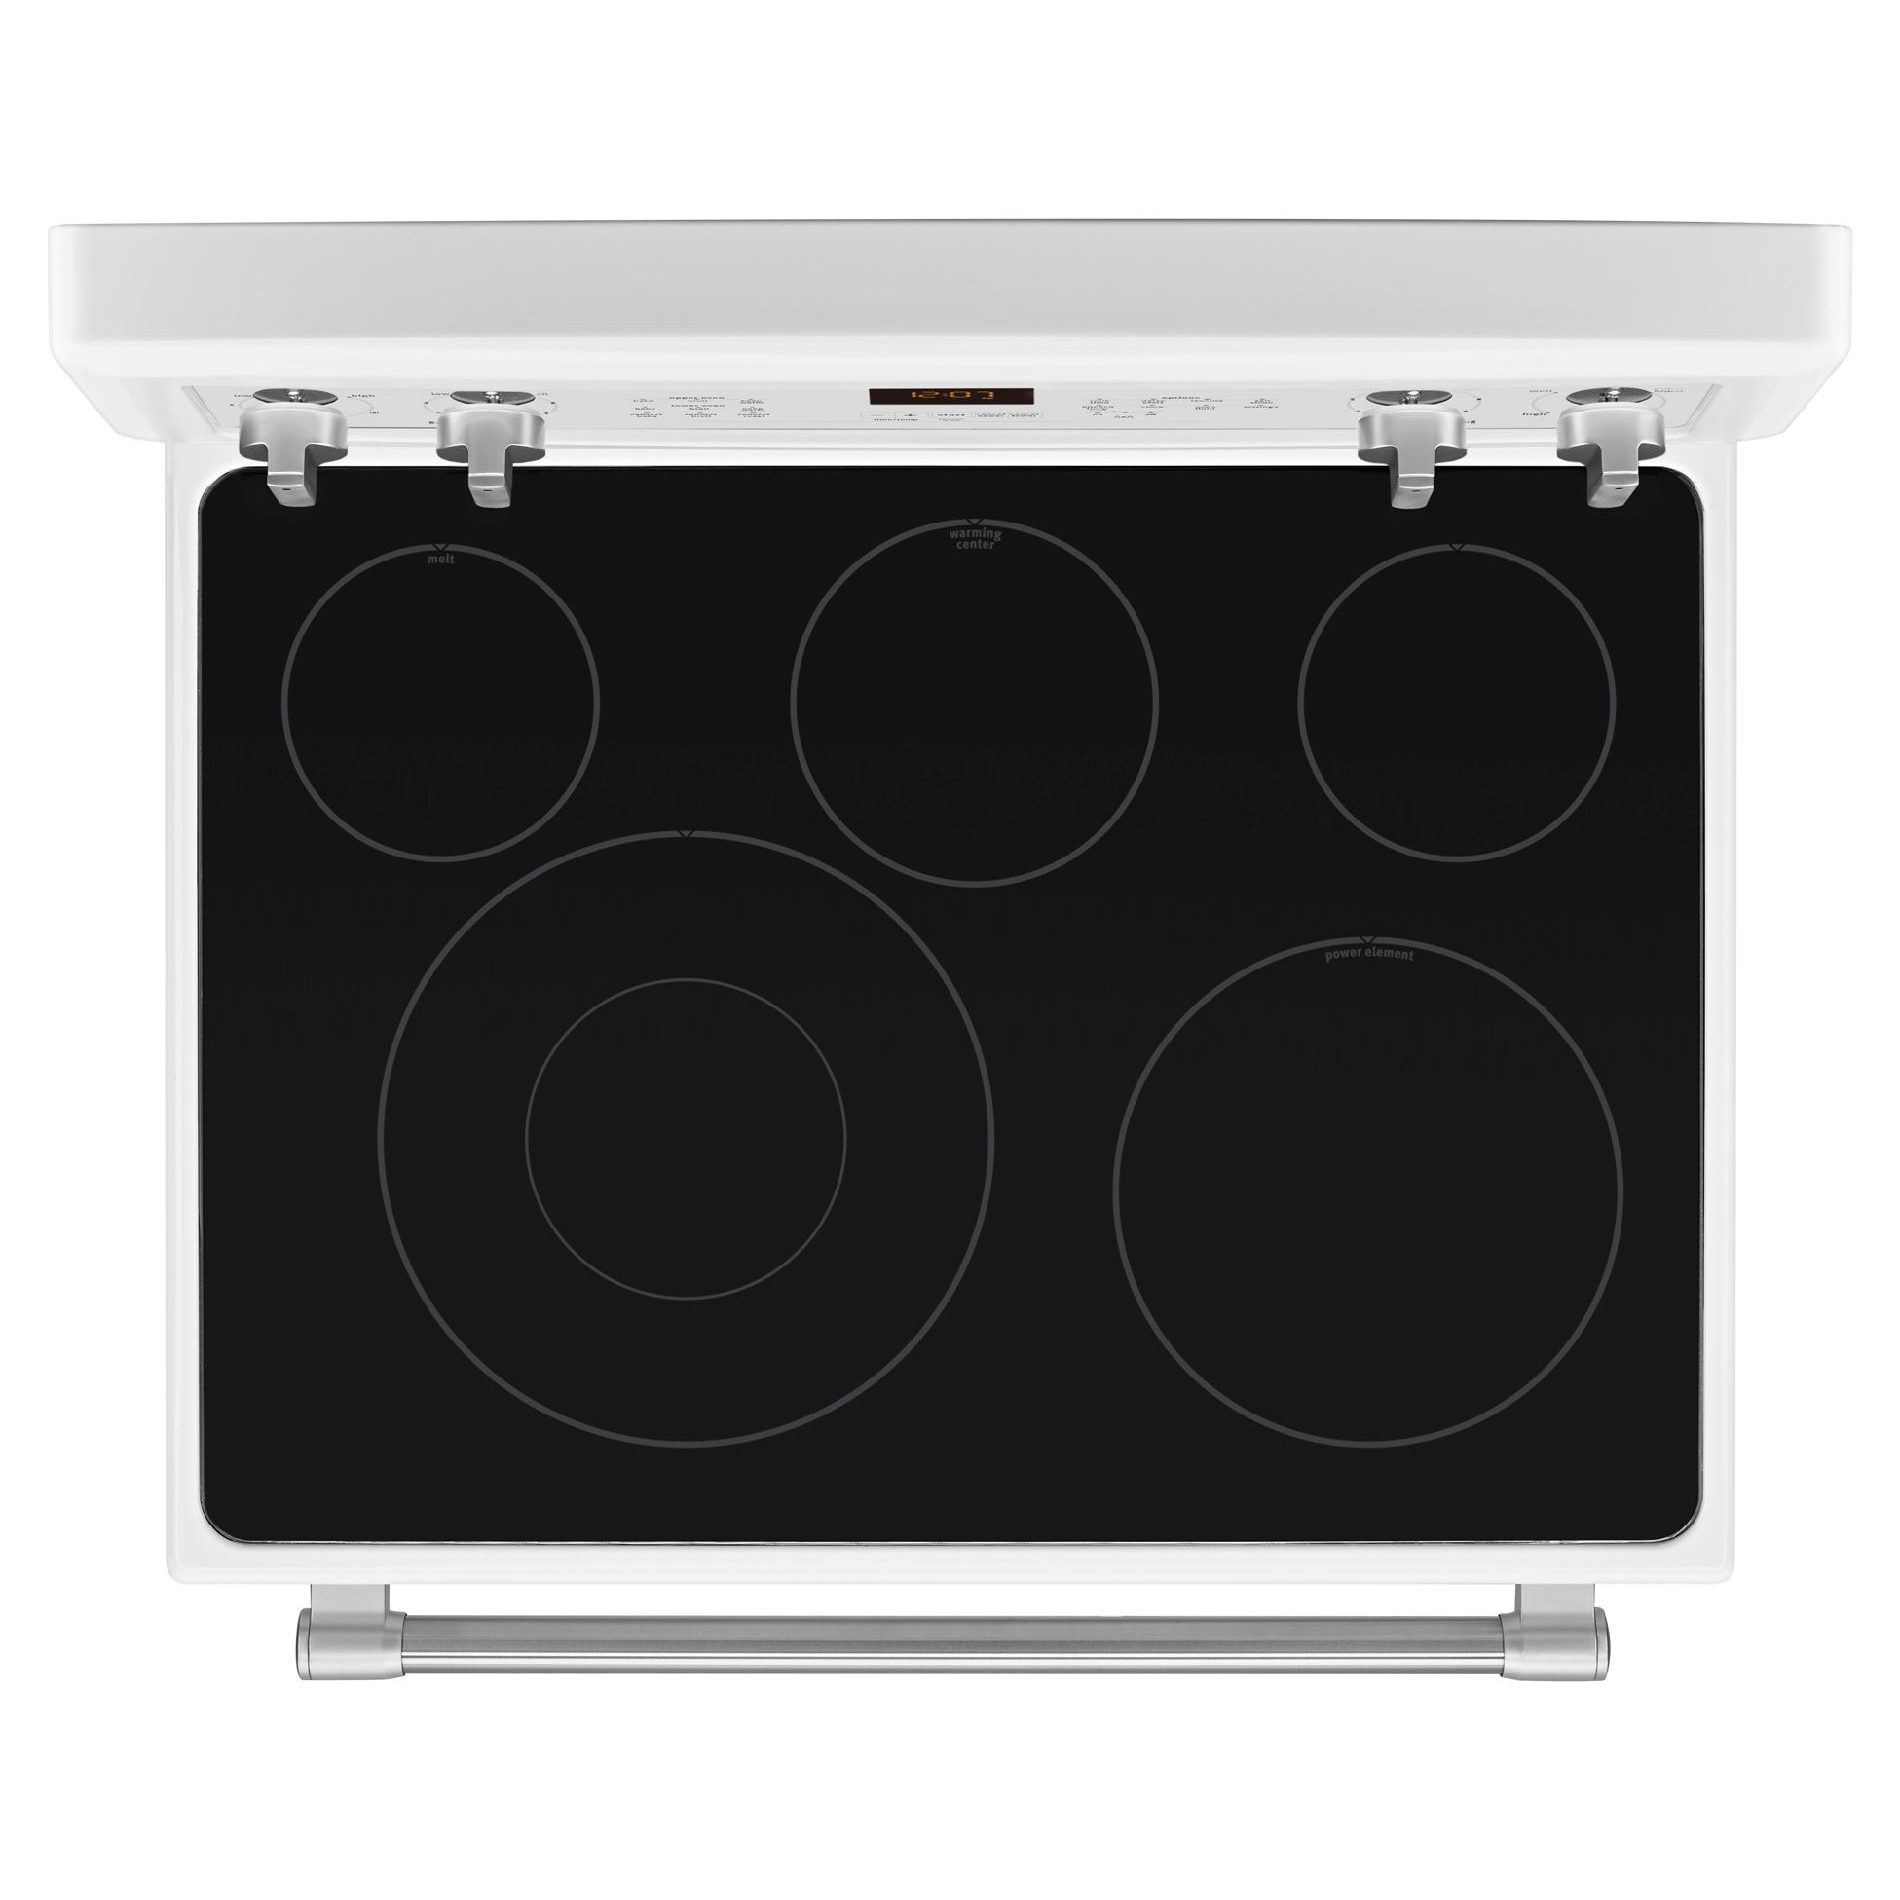 Maytag MET8720DH 6.7 cu. ft. Electric Double-Oven Range - White w/ Stainless Handle